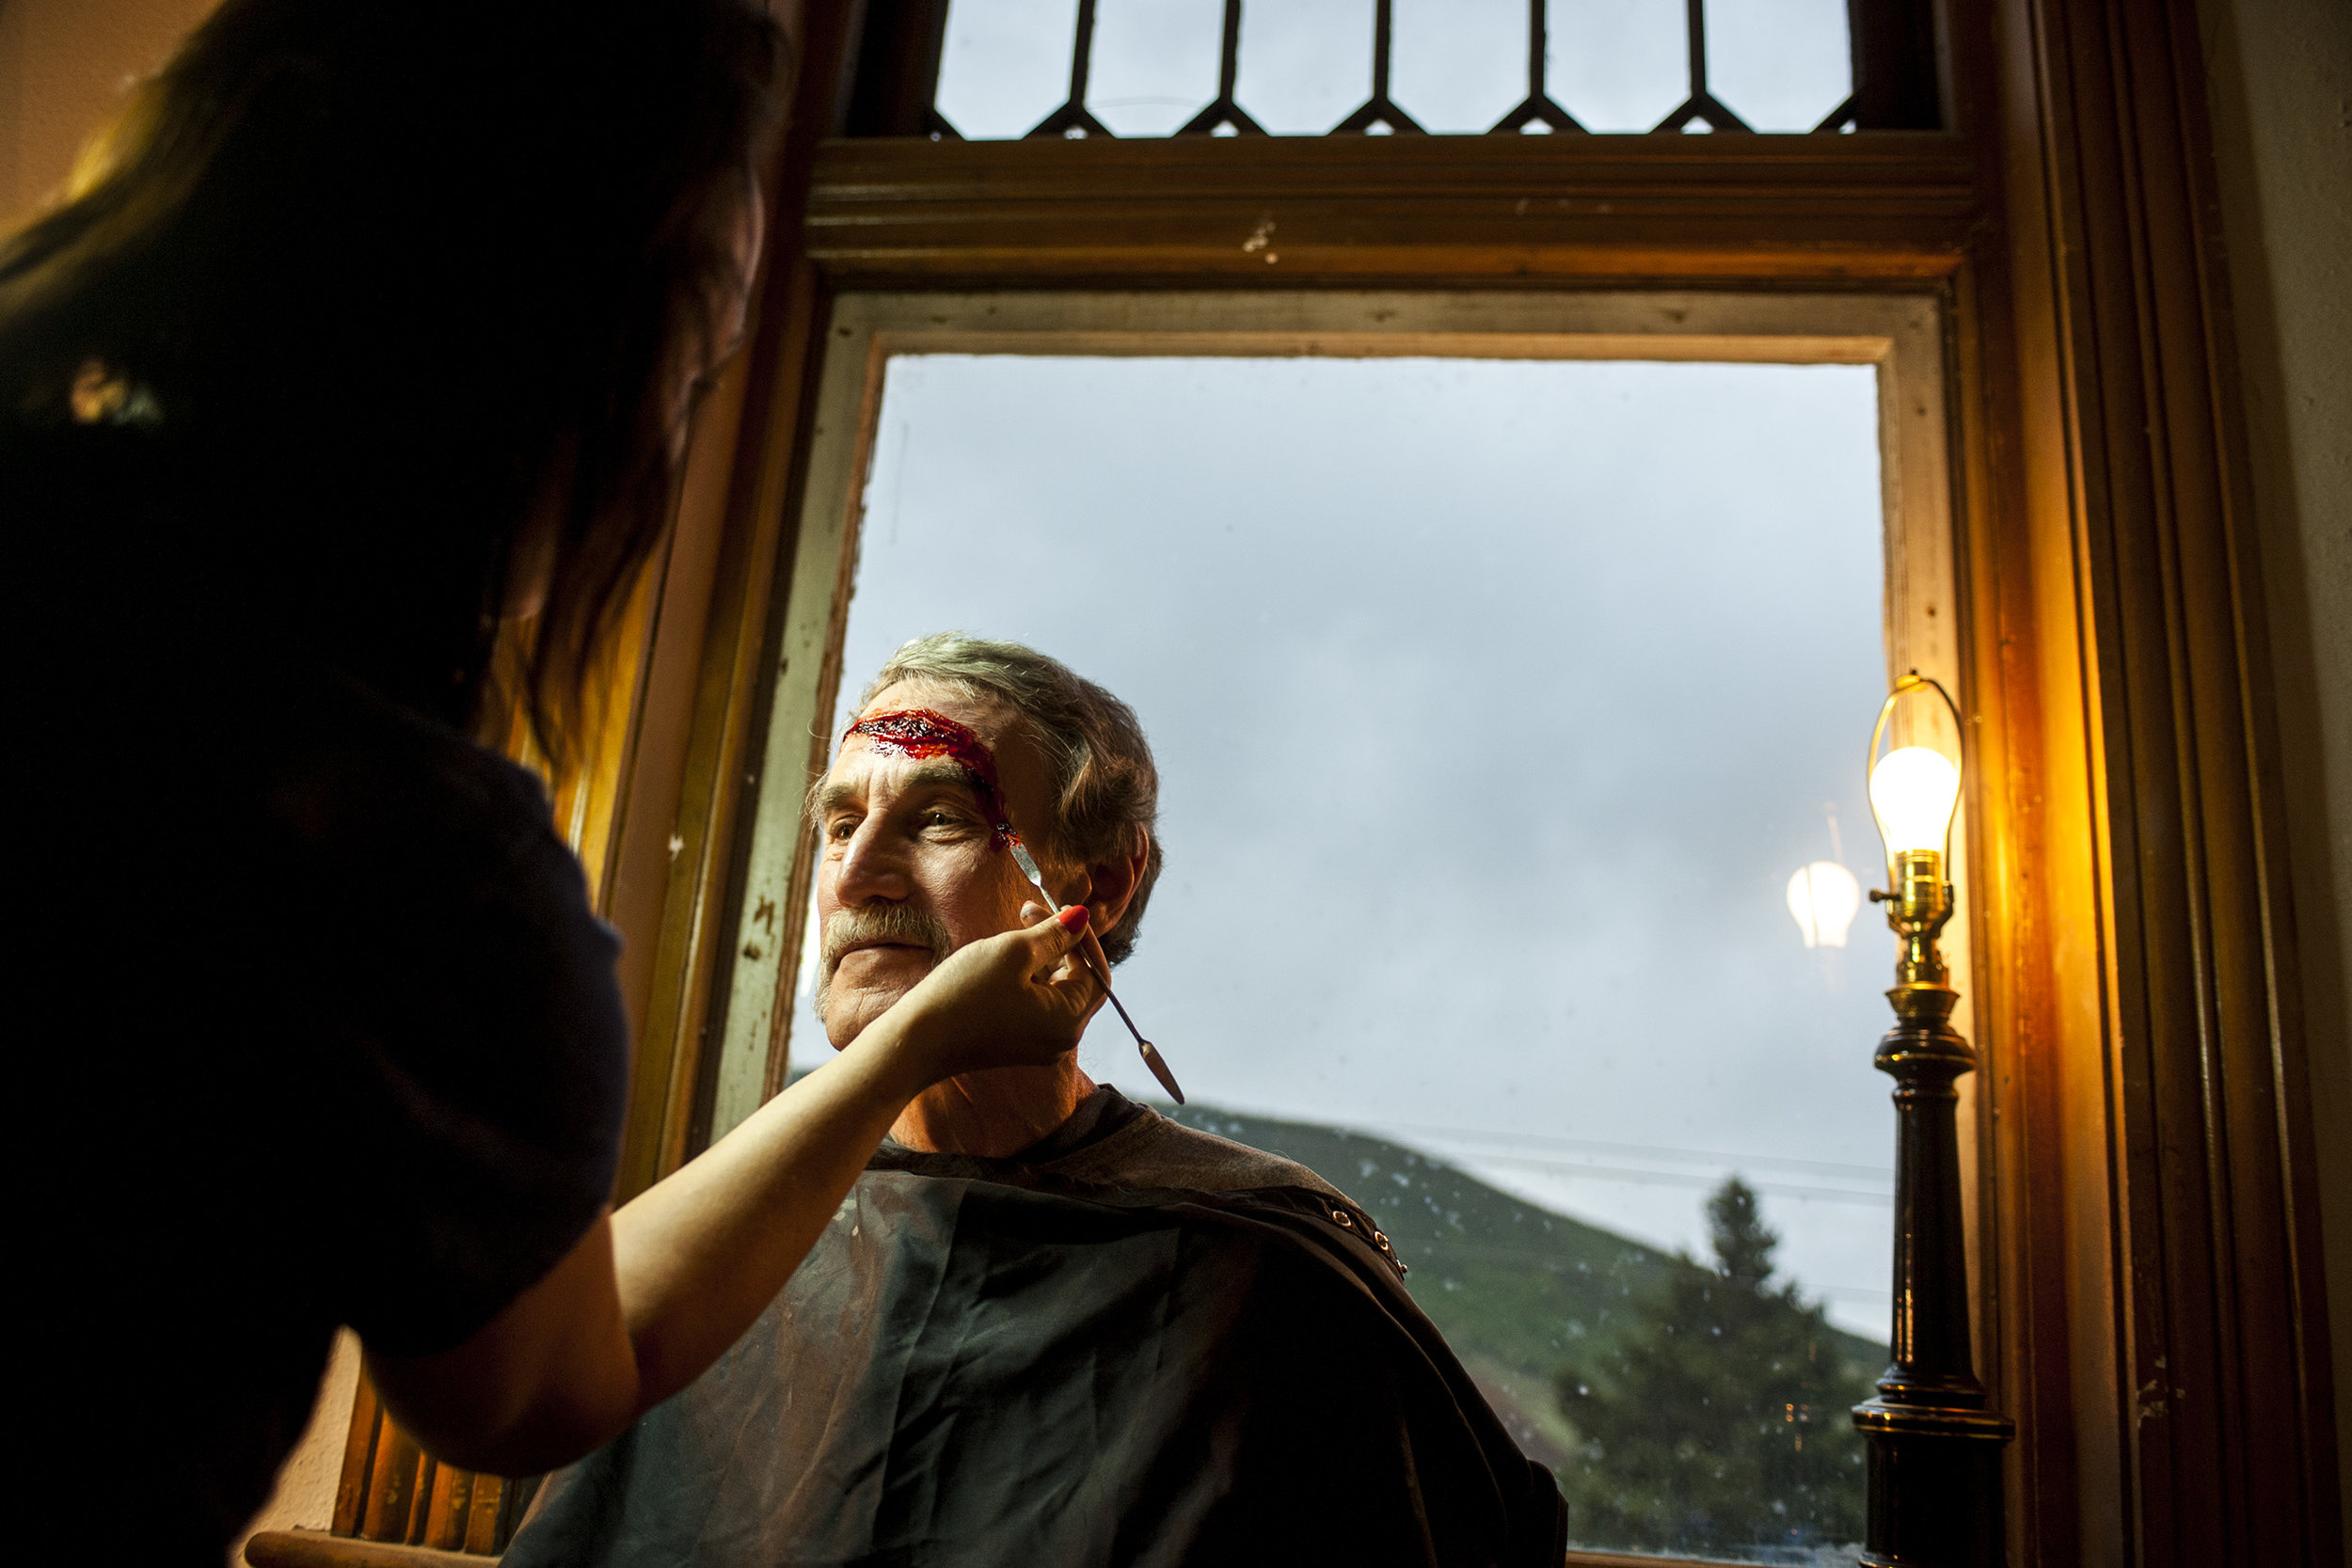 Sam Morrison of Victor, Colorado, has his makeup done prior to filming Carnival of Crime in Victor on Thursday, June 18, 2015. Twelve Victor residents have been chosen to play as extras in a film called Carnival of Crime which is a movie based off of the short story The Facts Concerning the Recent Carnival in Connecticut but Mark Twain.